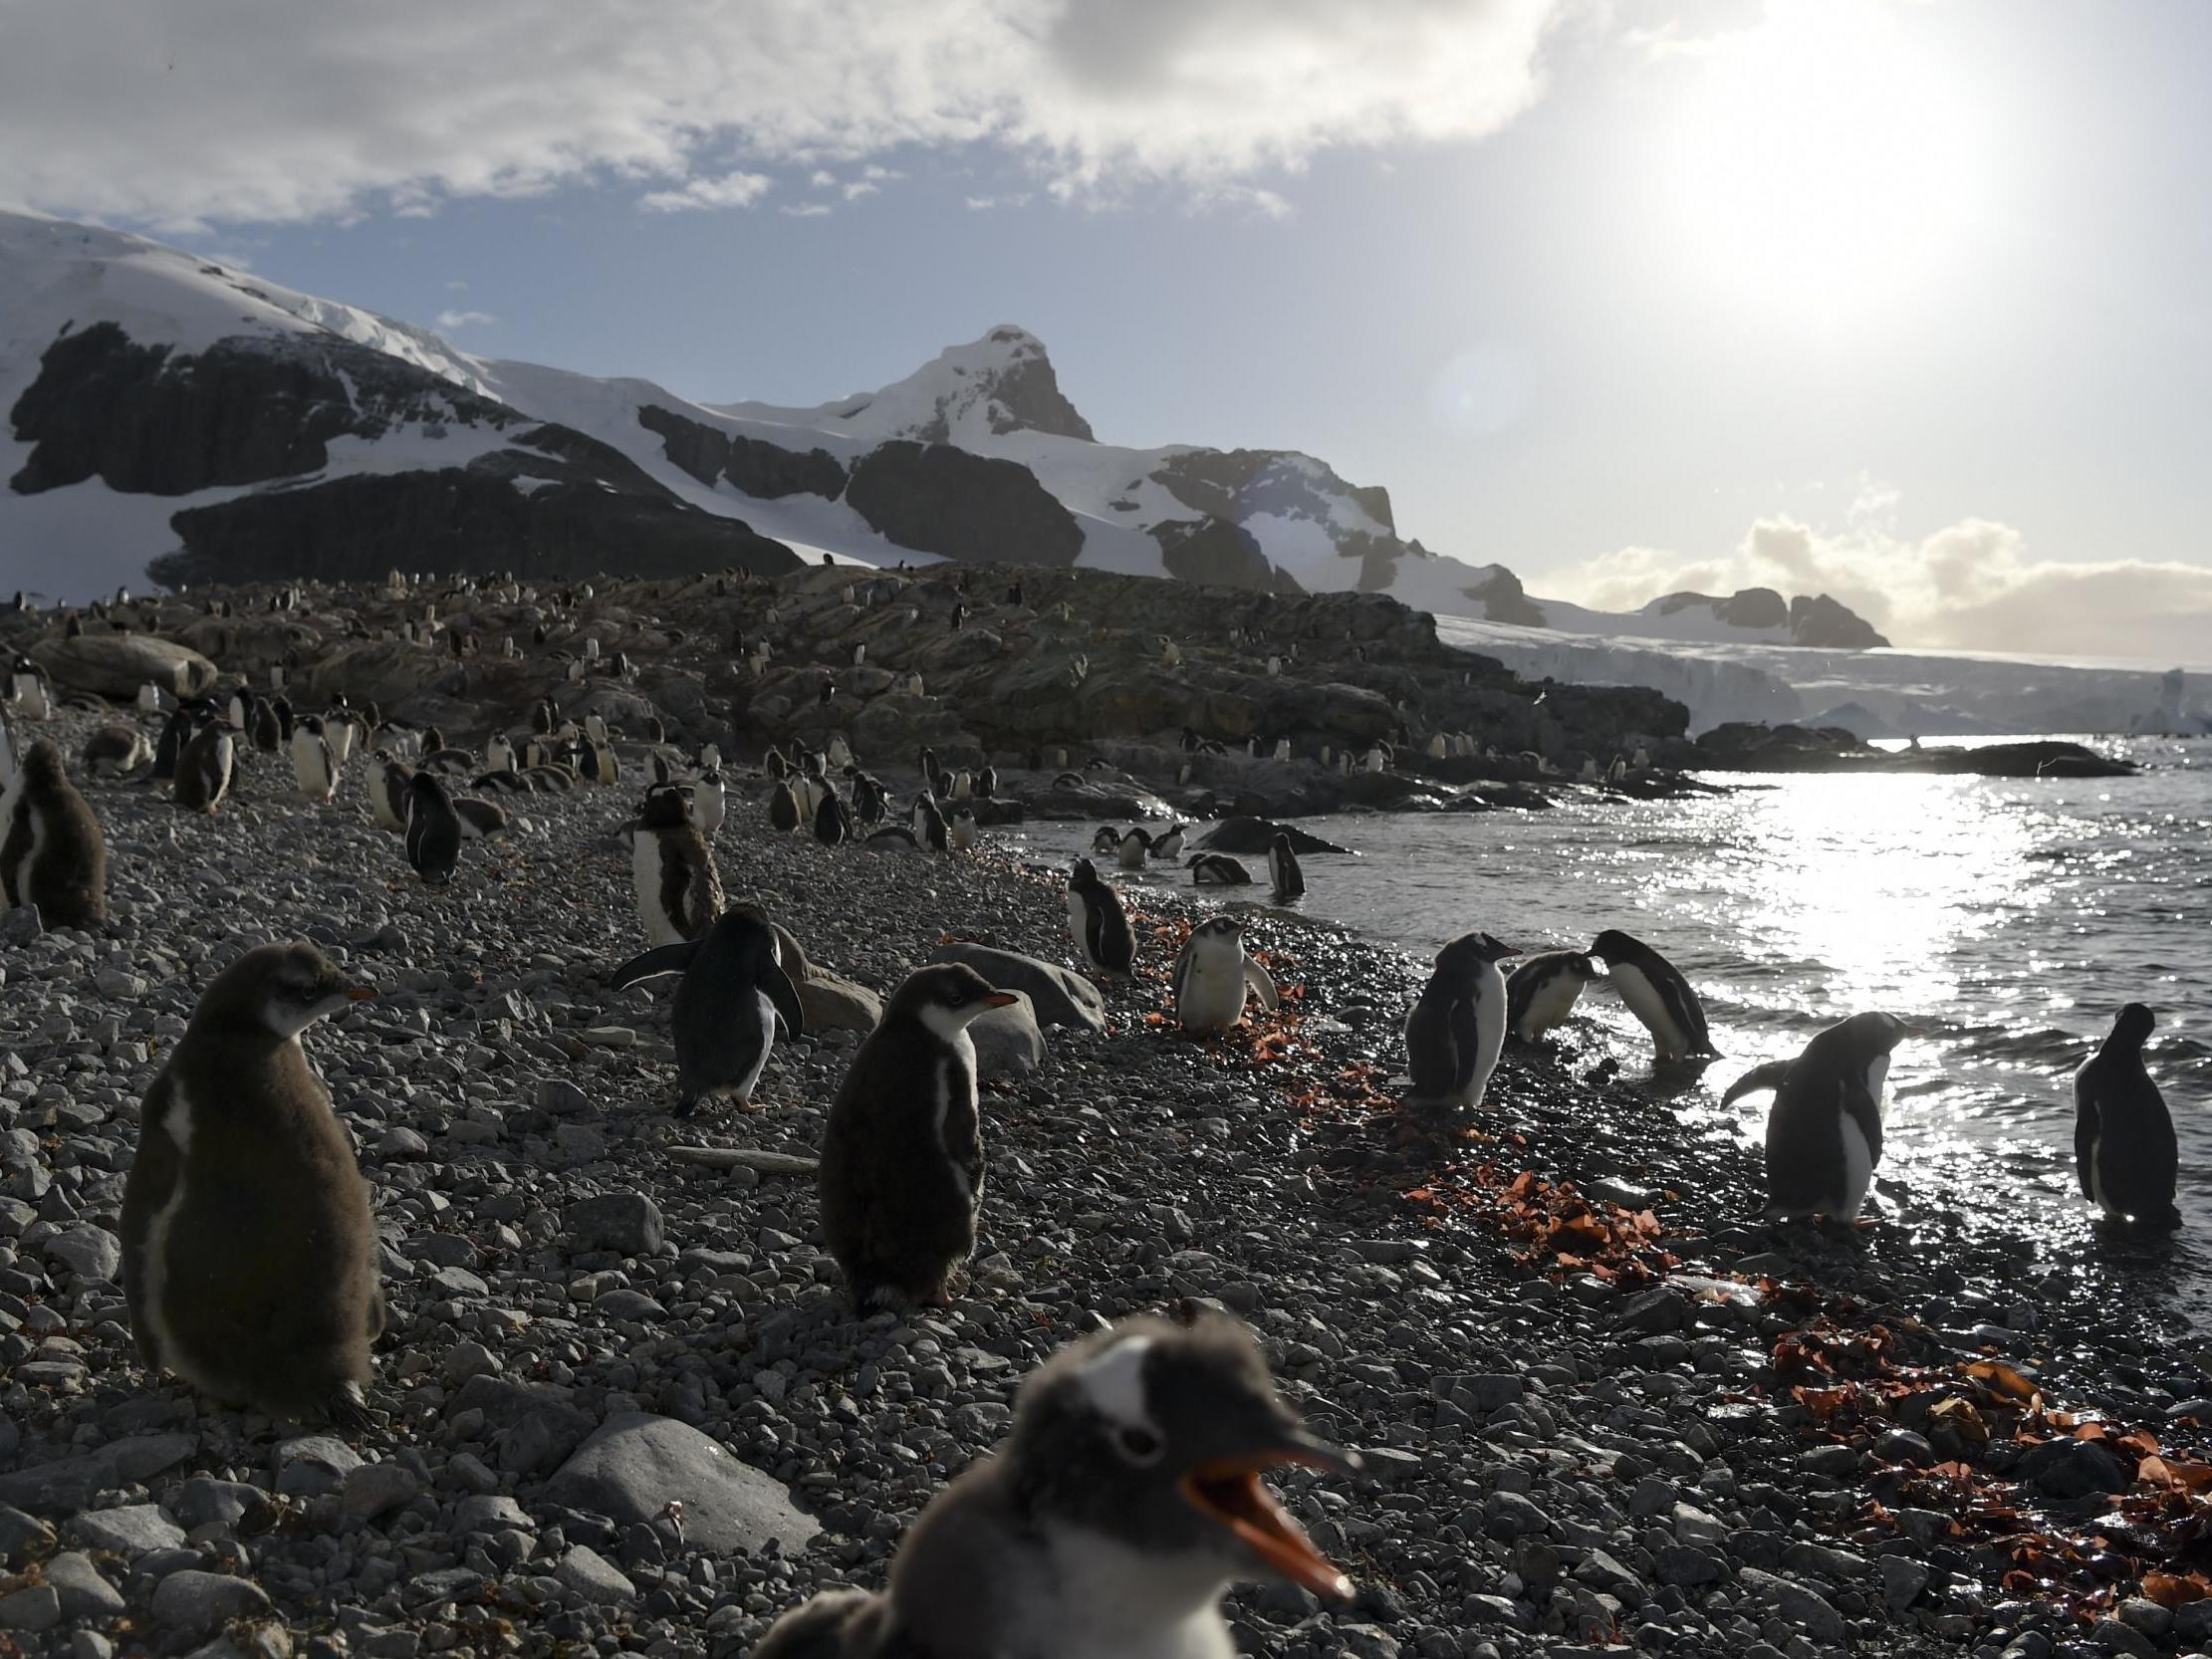 Krill fishing industry backs massive Antarctic ocean sanctuary to protect penguins, seals and whales: Move comes after 1.7 million people back campaign to create largest ever wildlife sanctuary in pristine waters around polar region.